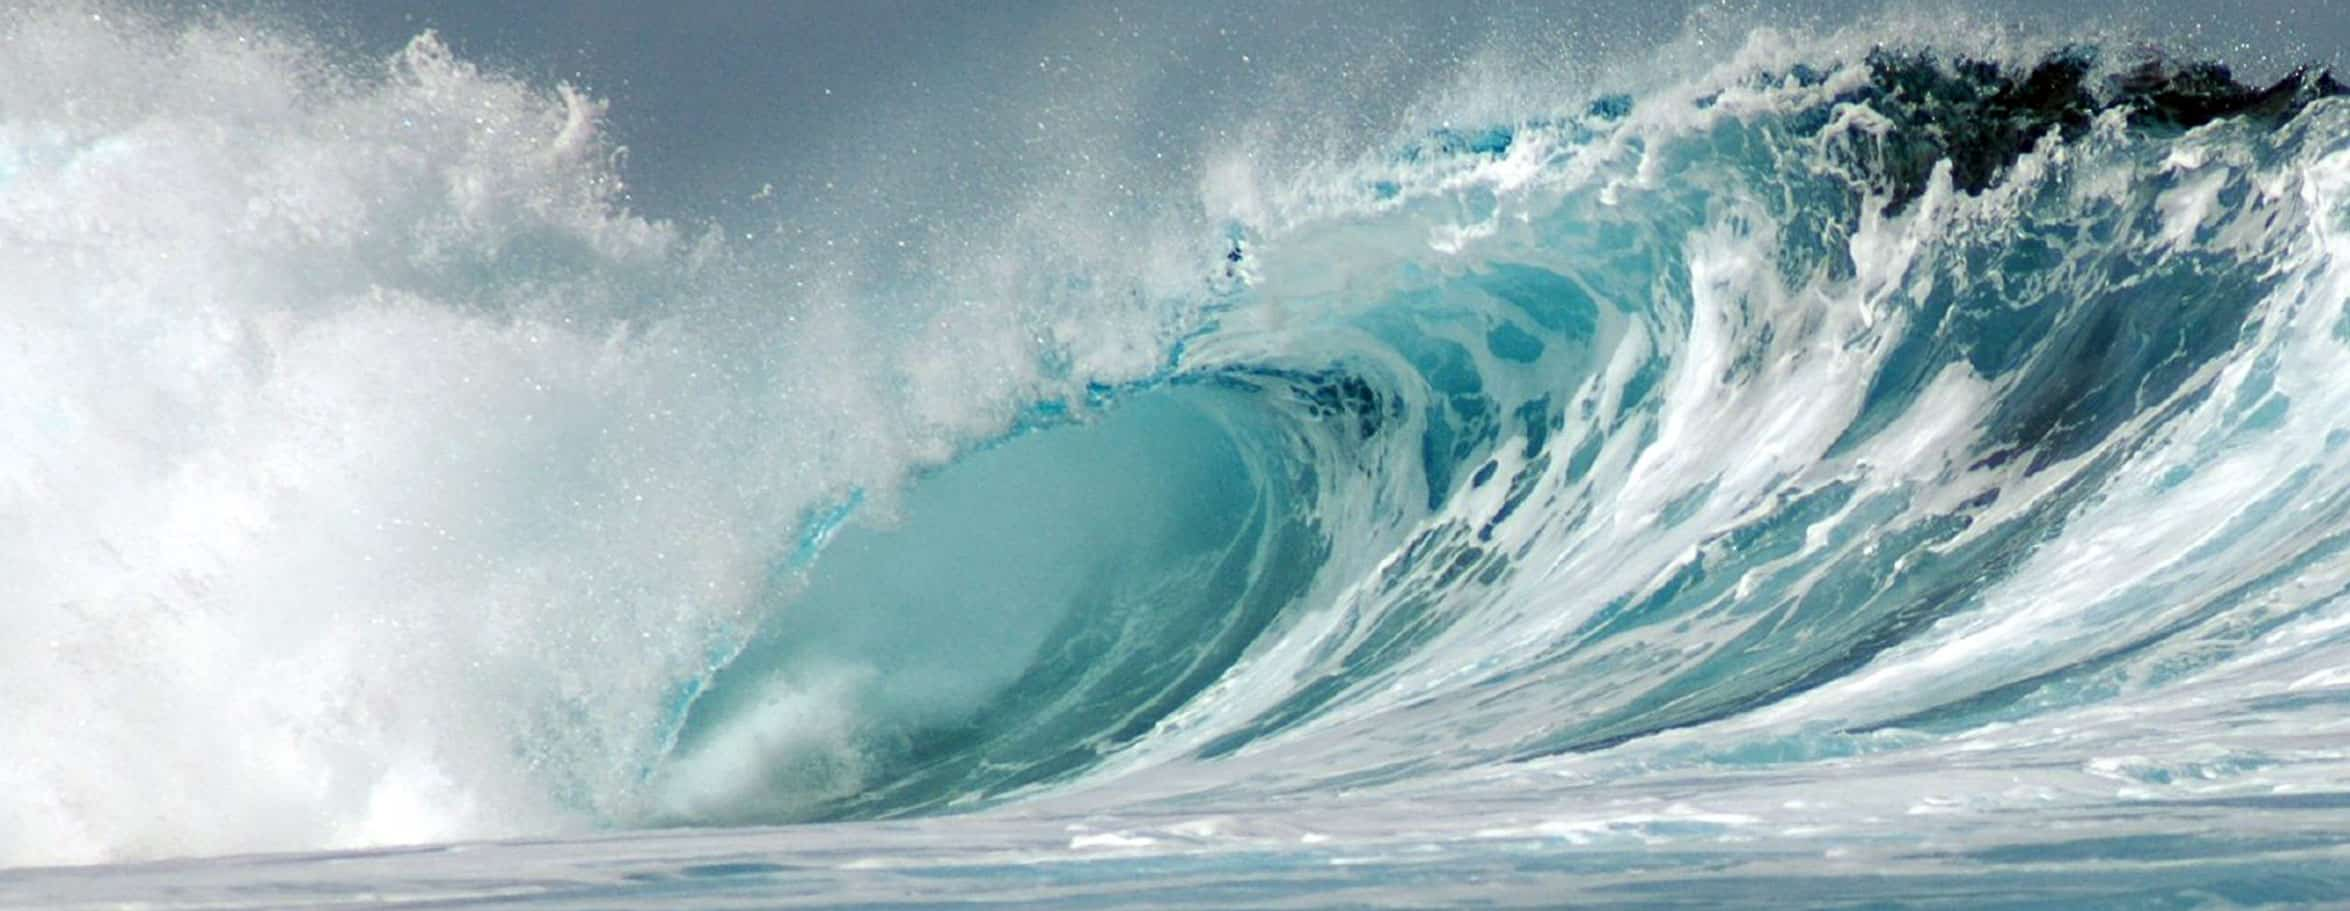 Vague de Teahupoo. Photo Pierre Lesage